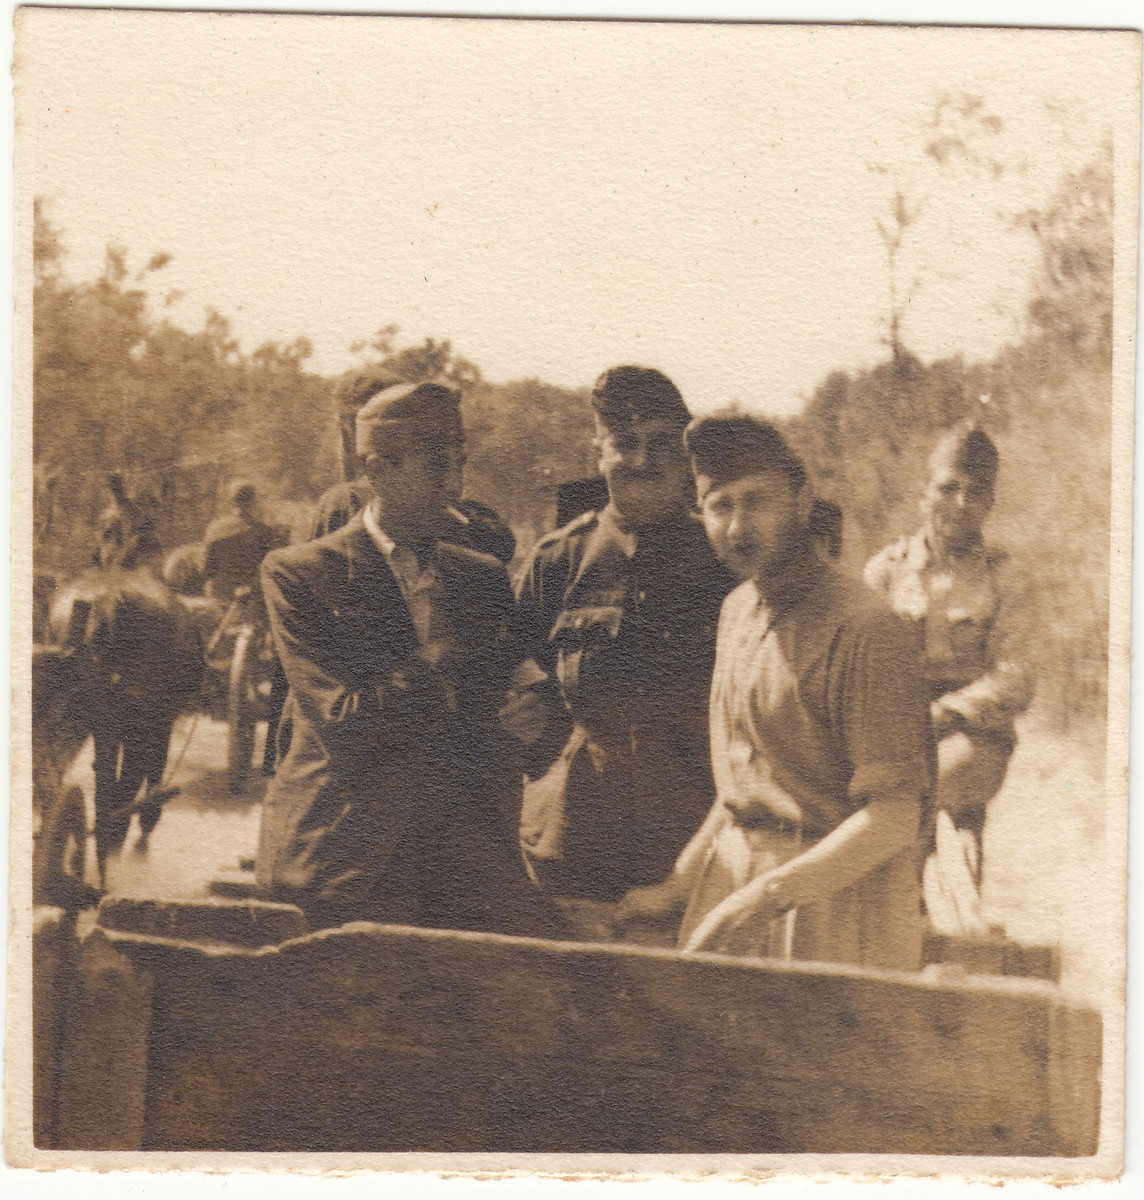 Group portrait of Hungarian Jews in a labor battalion in Hajduhadhaz.